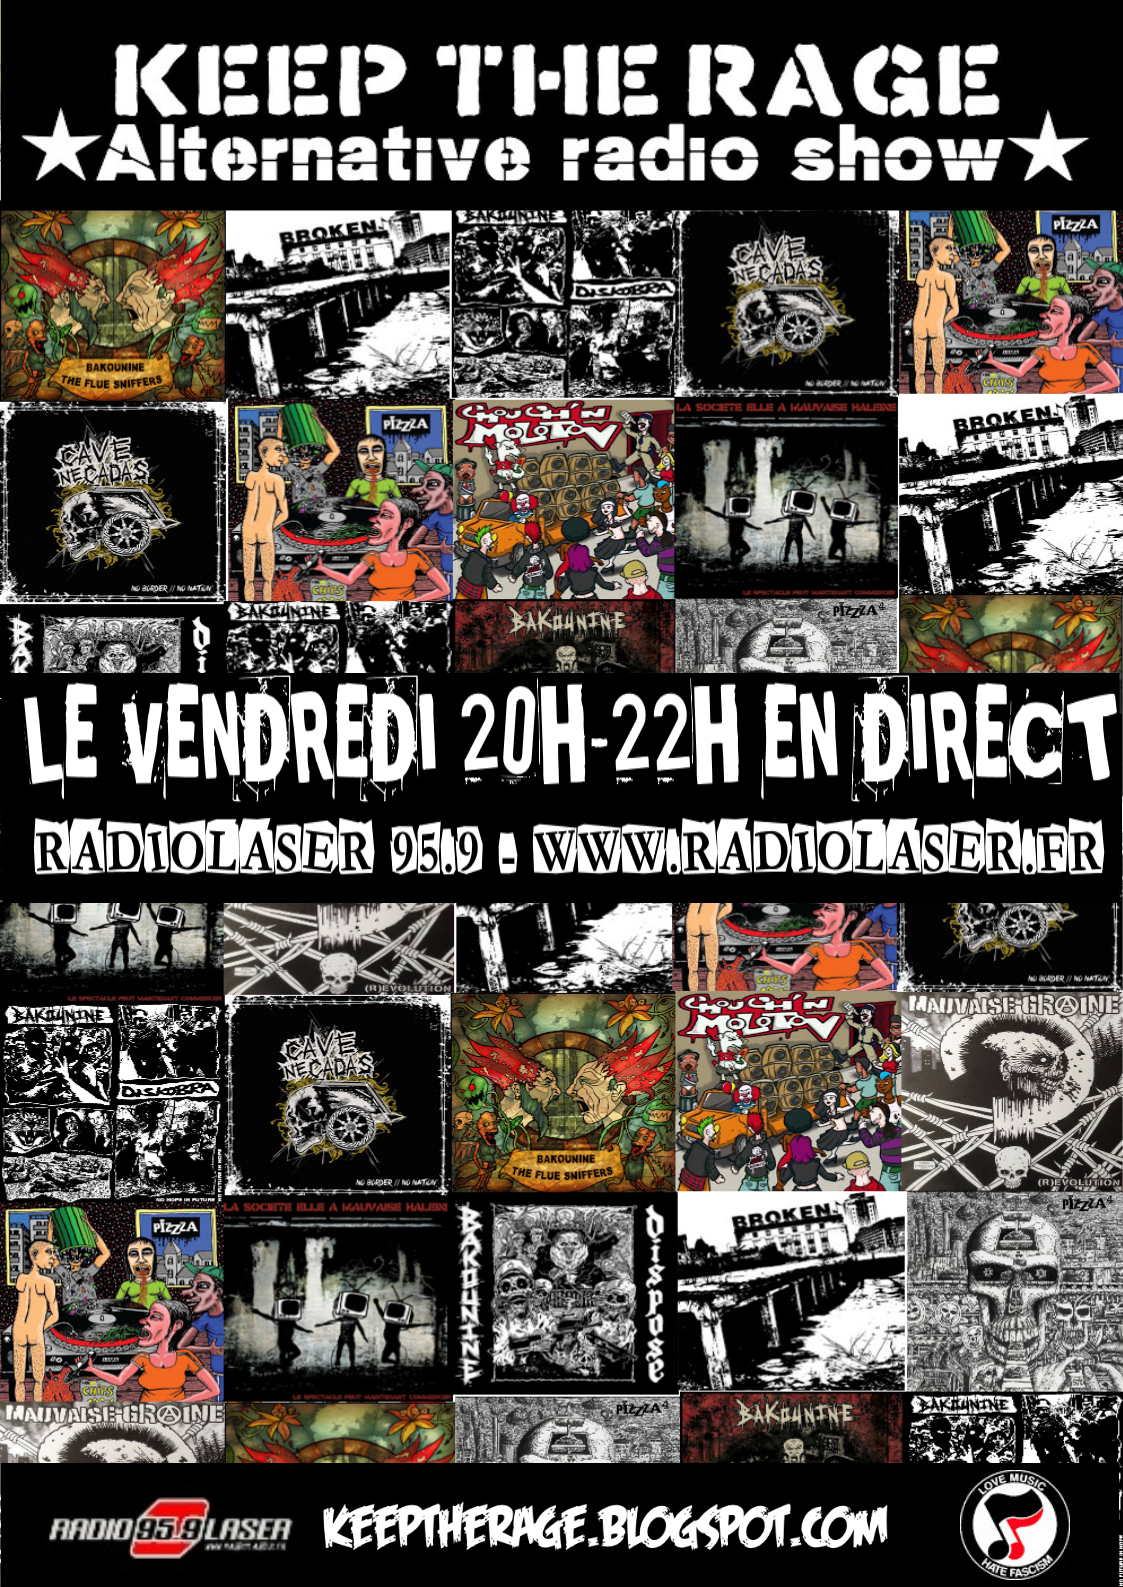 Keep The Rage #277 - Vendredi 28 décembre - Playlist et Podcast